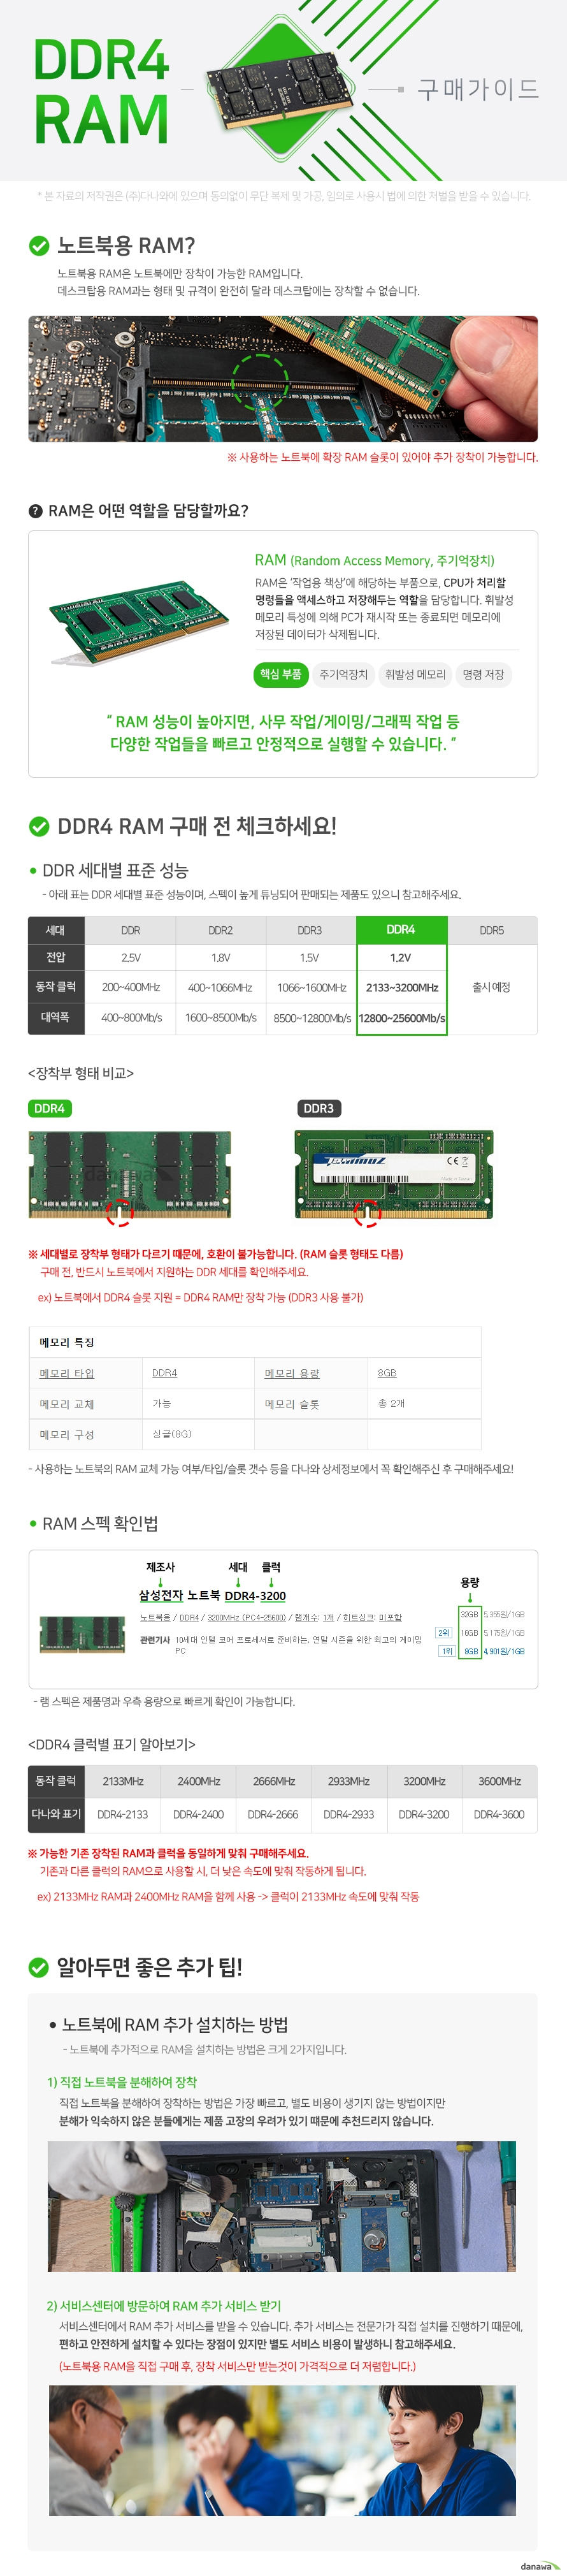 TeamGroup 노트북 DDR4-2666 CL19 ZEUS (16GB)